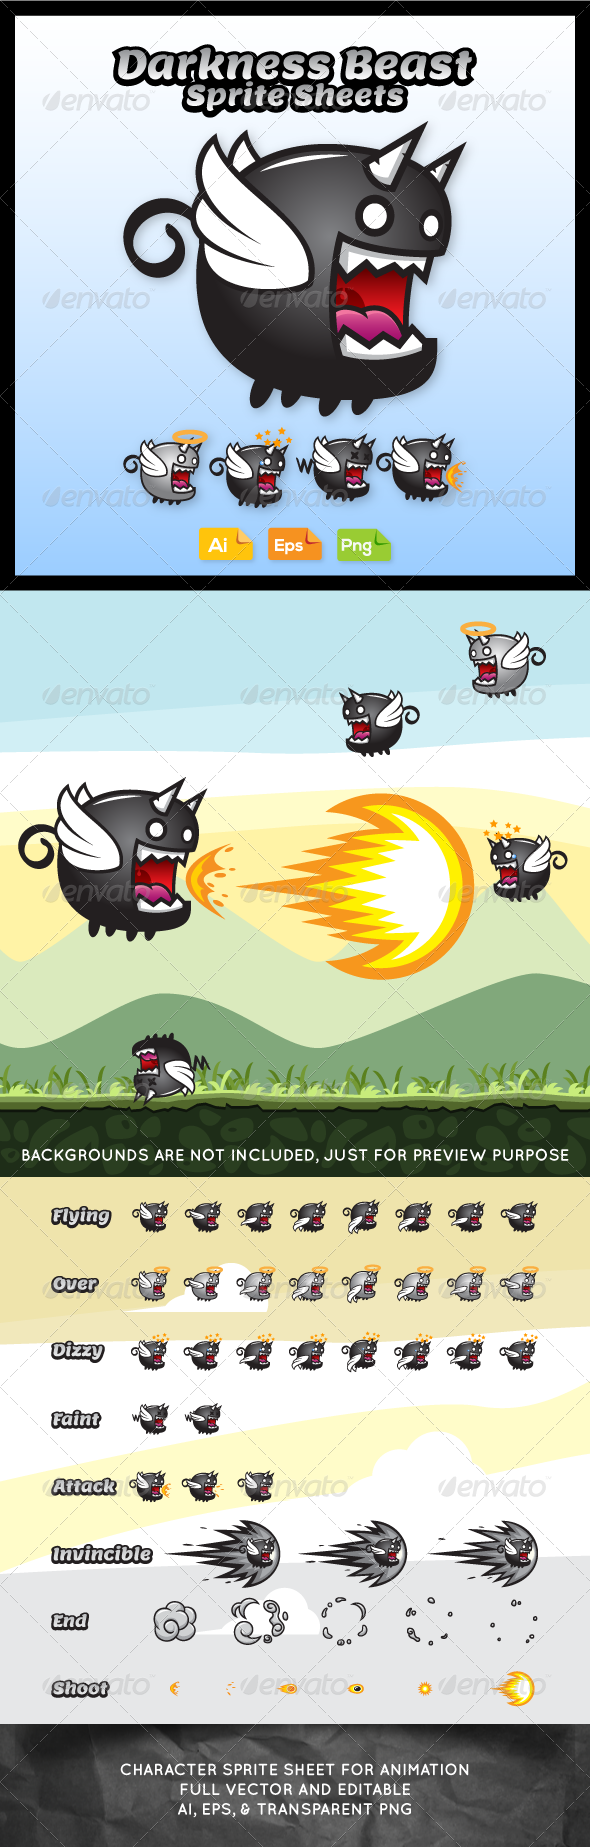 GraphicRiver Game Character Darkness Beast Sprite Sheets 7634796